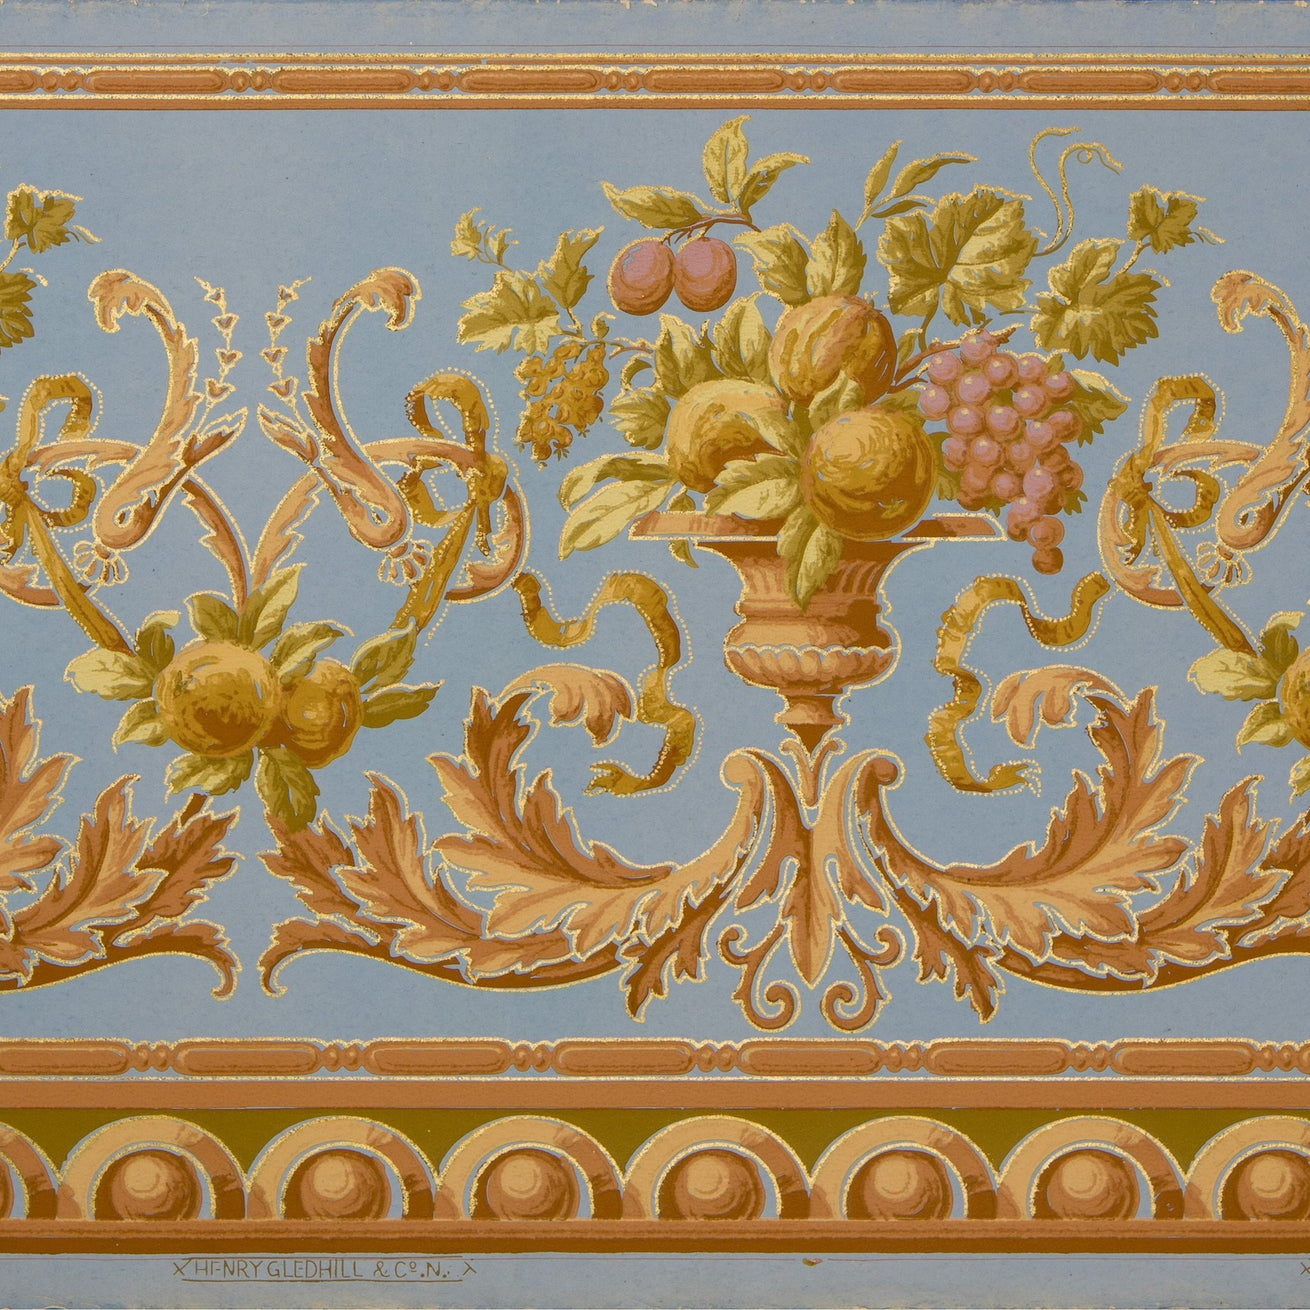 Classical Frieze with Urns, Fruit, Ribbons - Antique Wallpaper Remnant